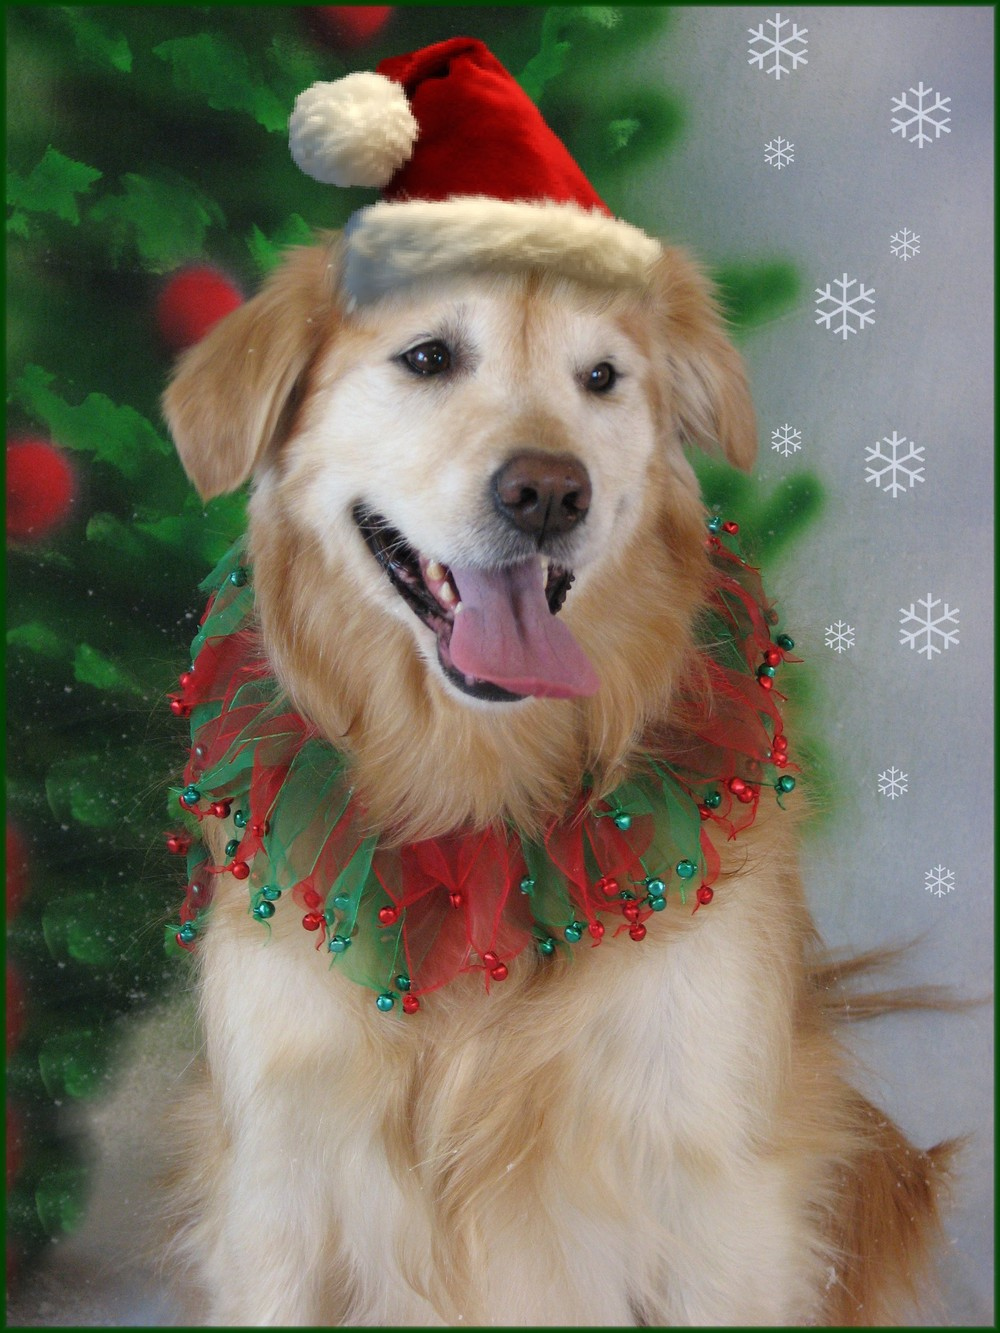 In honor of my wonderful 14 year old Golden, Cagney, that I adopted back in 2002. She's still going strong and living life to the fullest!! Love you Cag! Mom/Samantha Hillmer